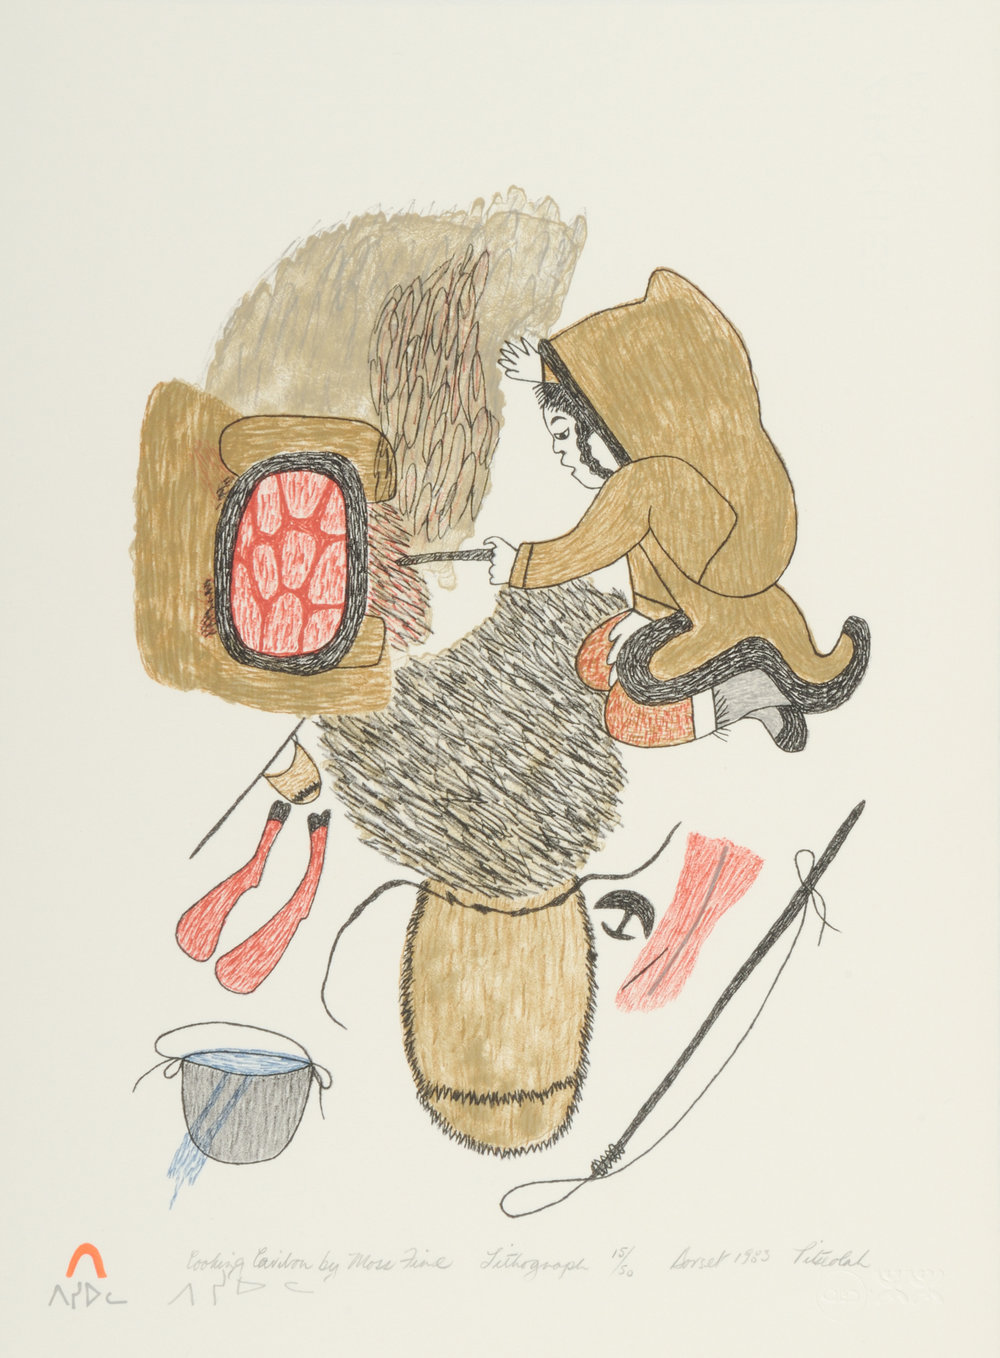 Pitseolak Ashoona COOKING CARIBOU BY MOSS FIRE Lithograph   1984 38 x 28.2 cm $175.00 CDN Released in the 1984 collection Dorset ID#: 84-F202